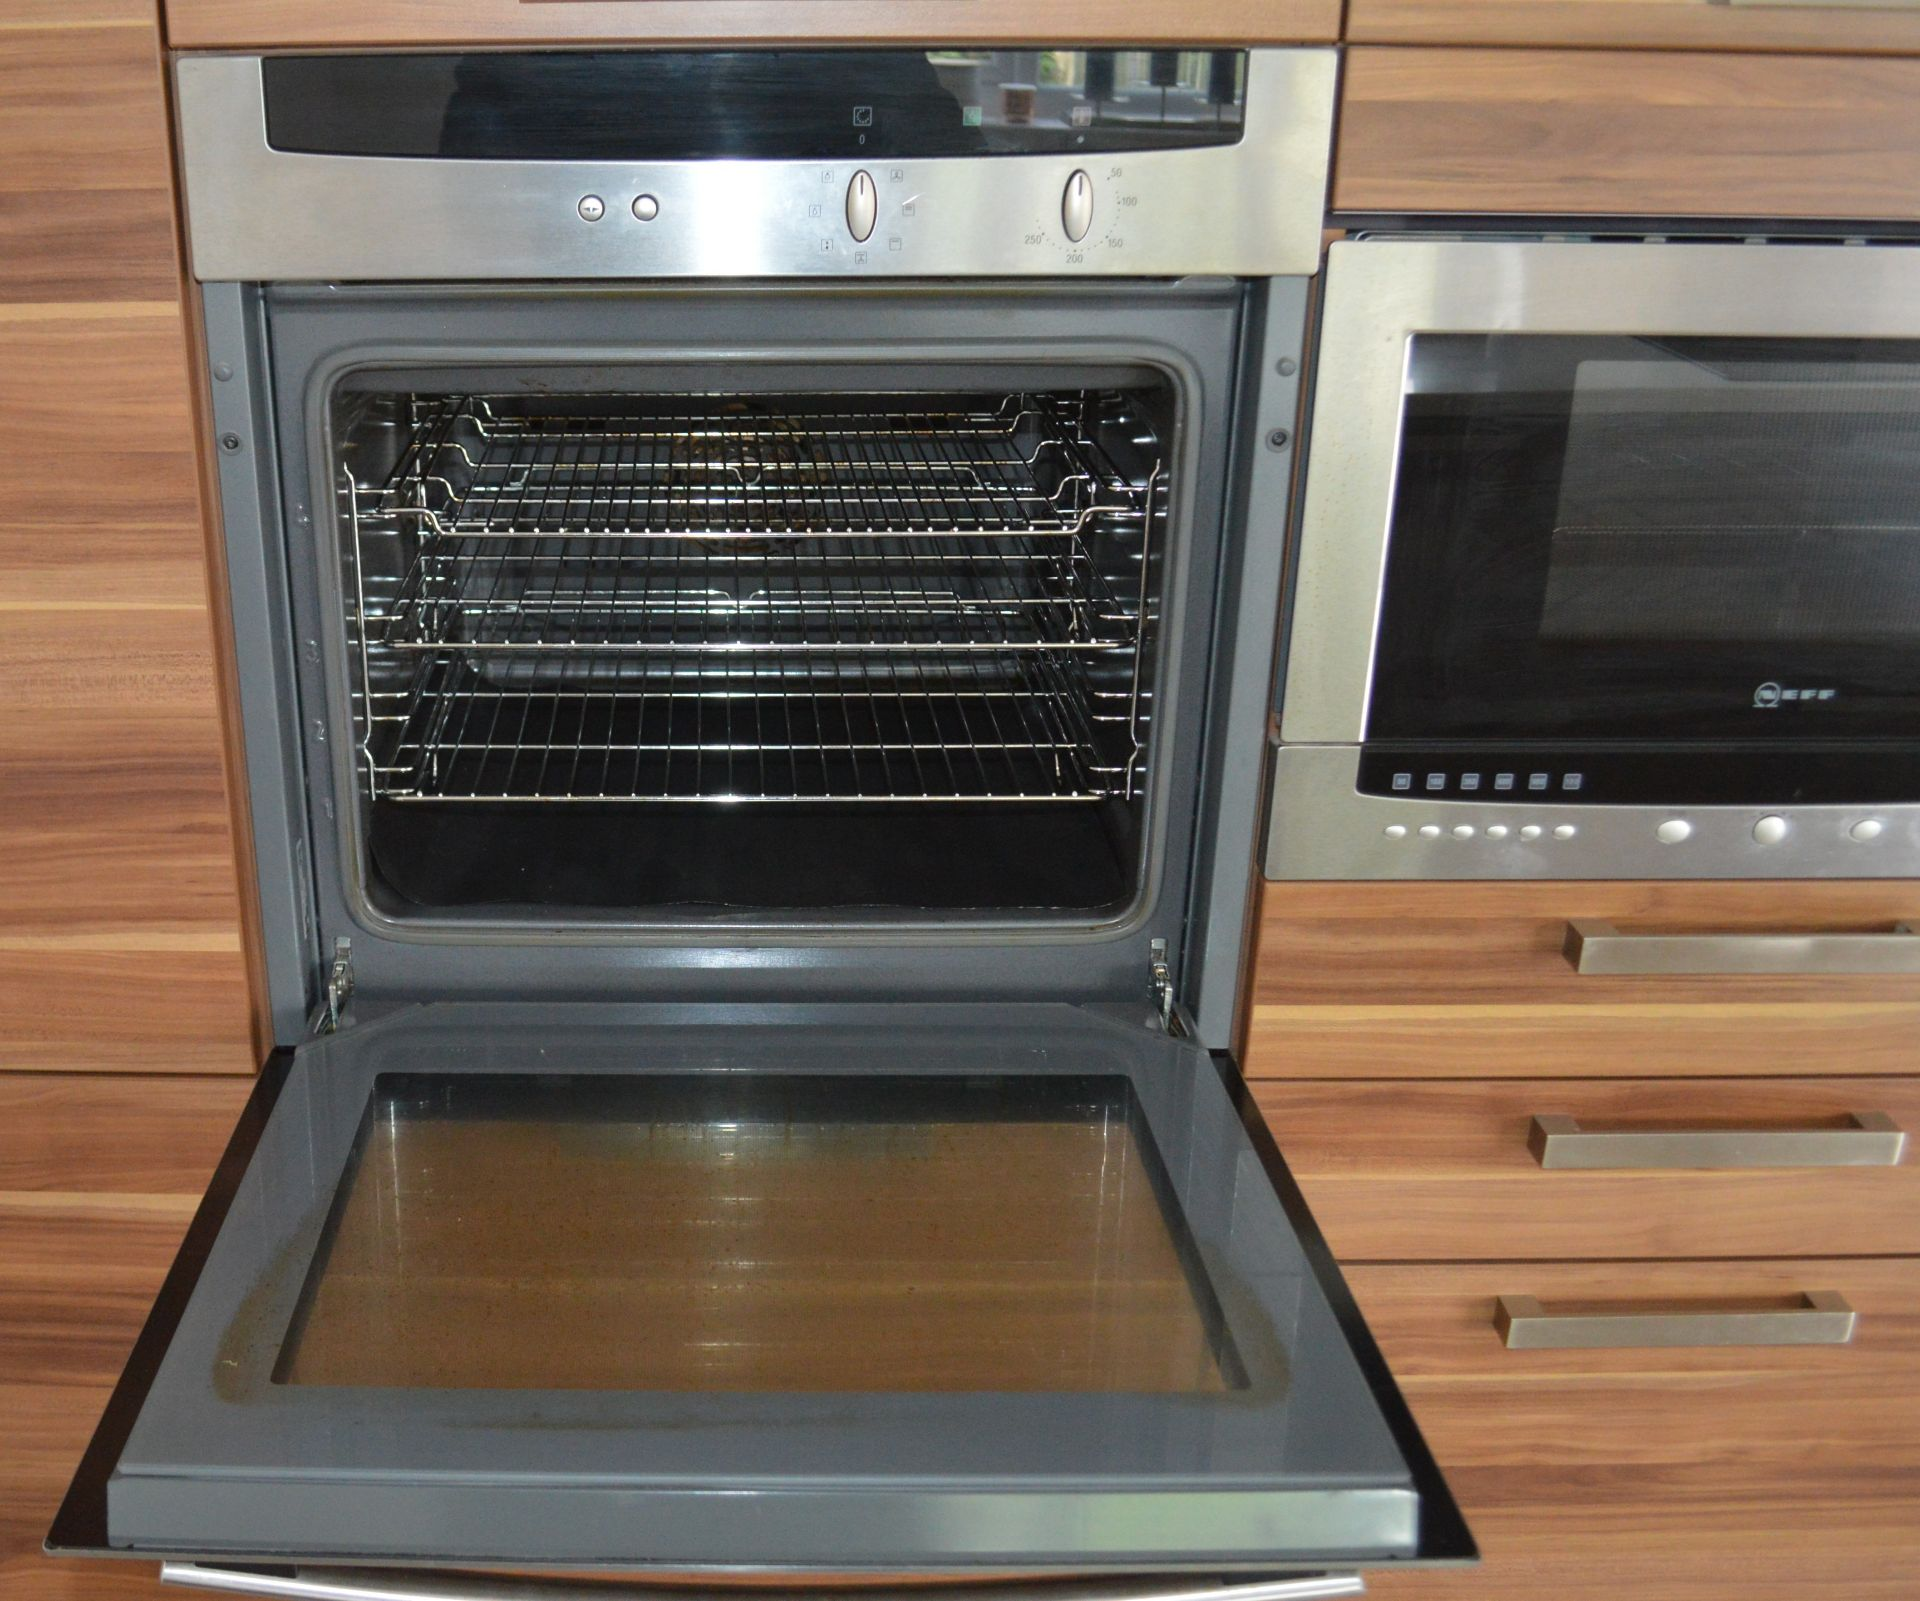 1 x Contemporary Bespoke Fitted Kitchen With Integrated Neff Branded Appliances, Quartz Worktops - Image 46 of 52